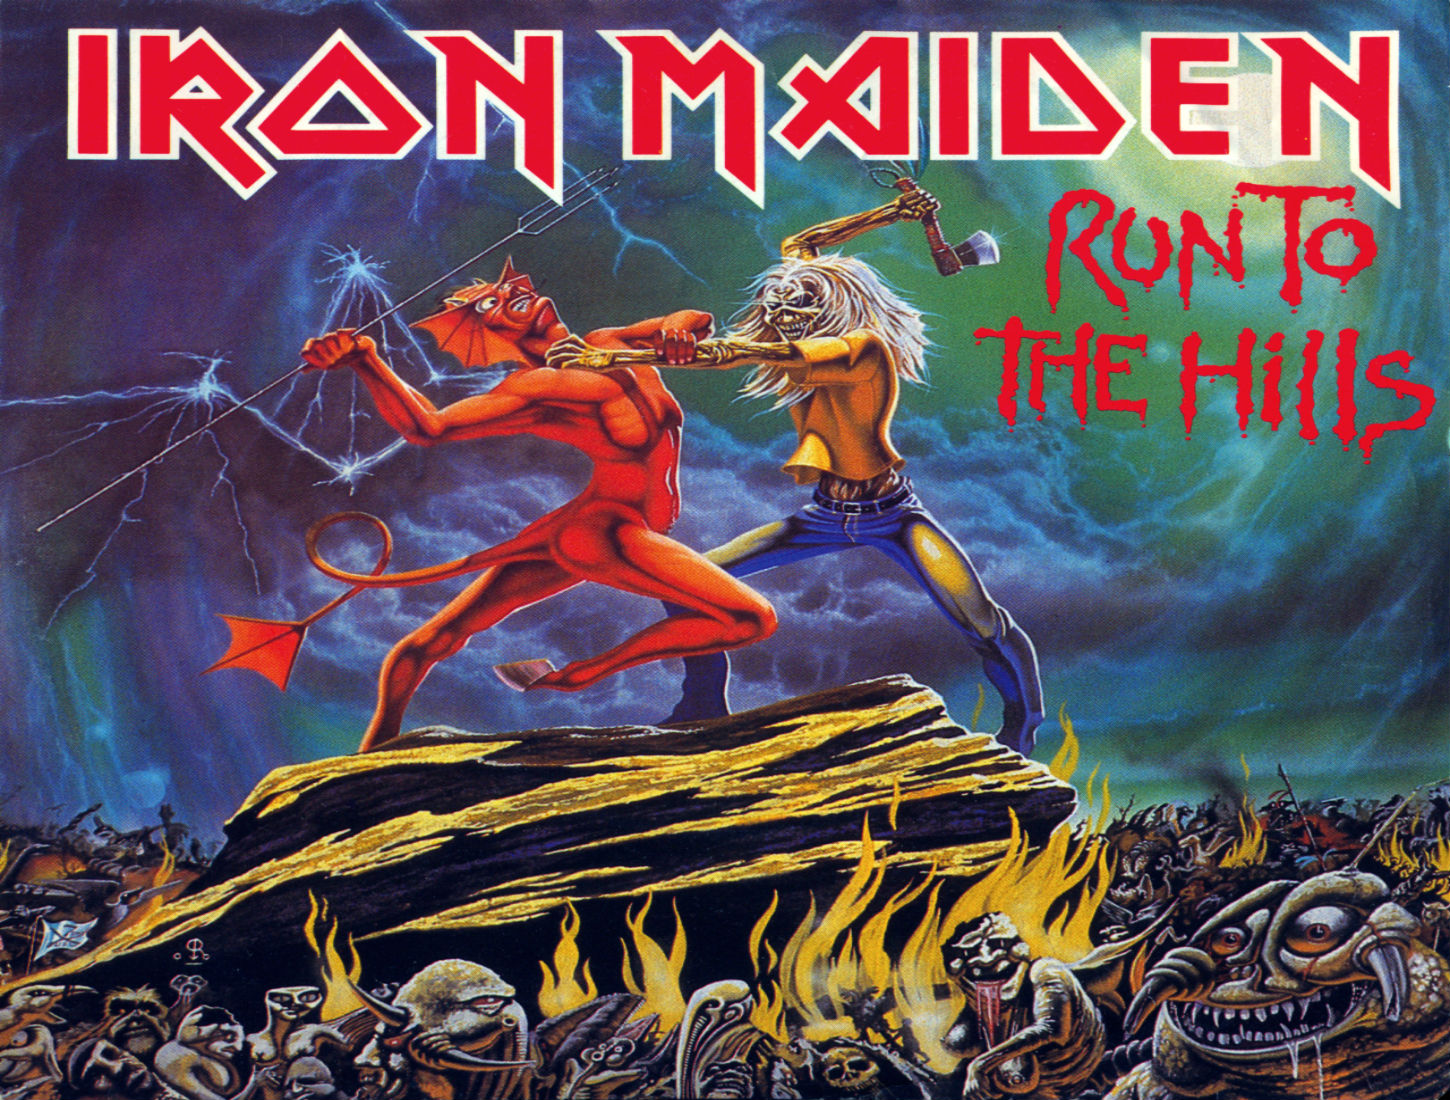 iron maiden wallpapers covers - photo #29